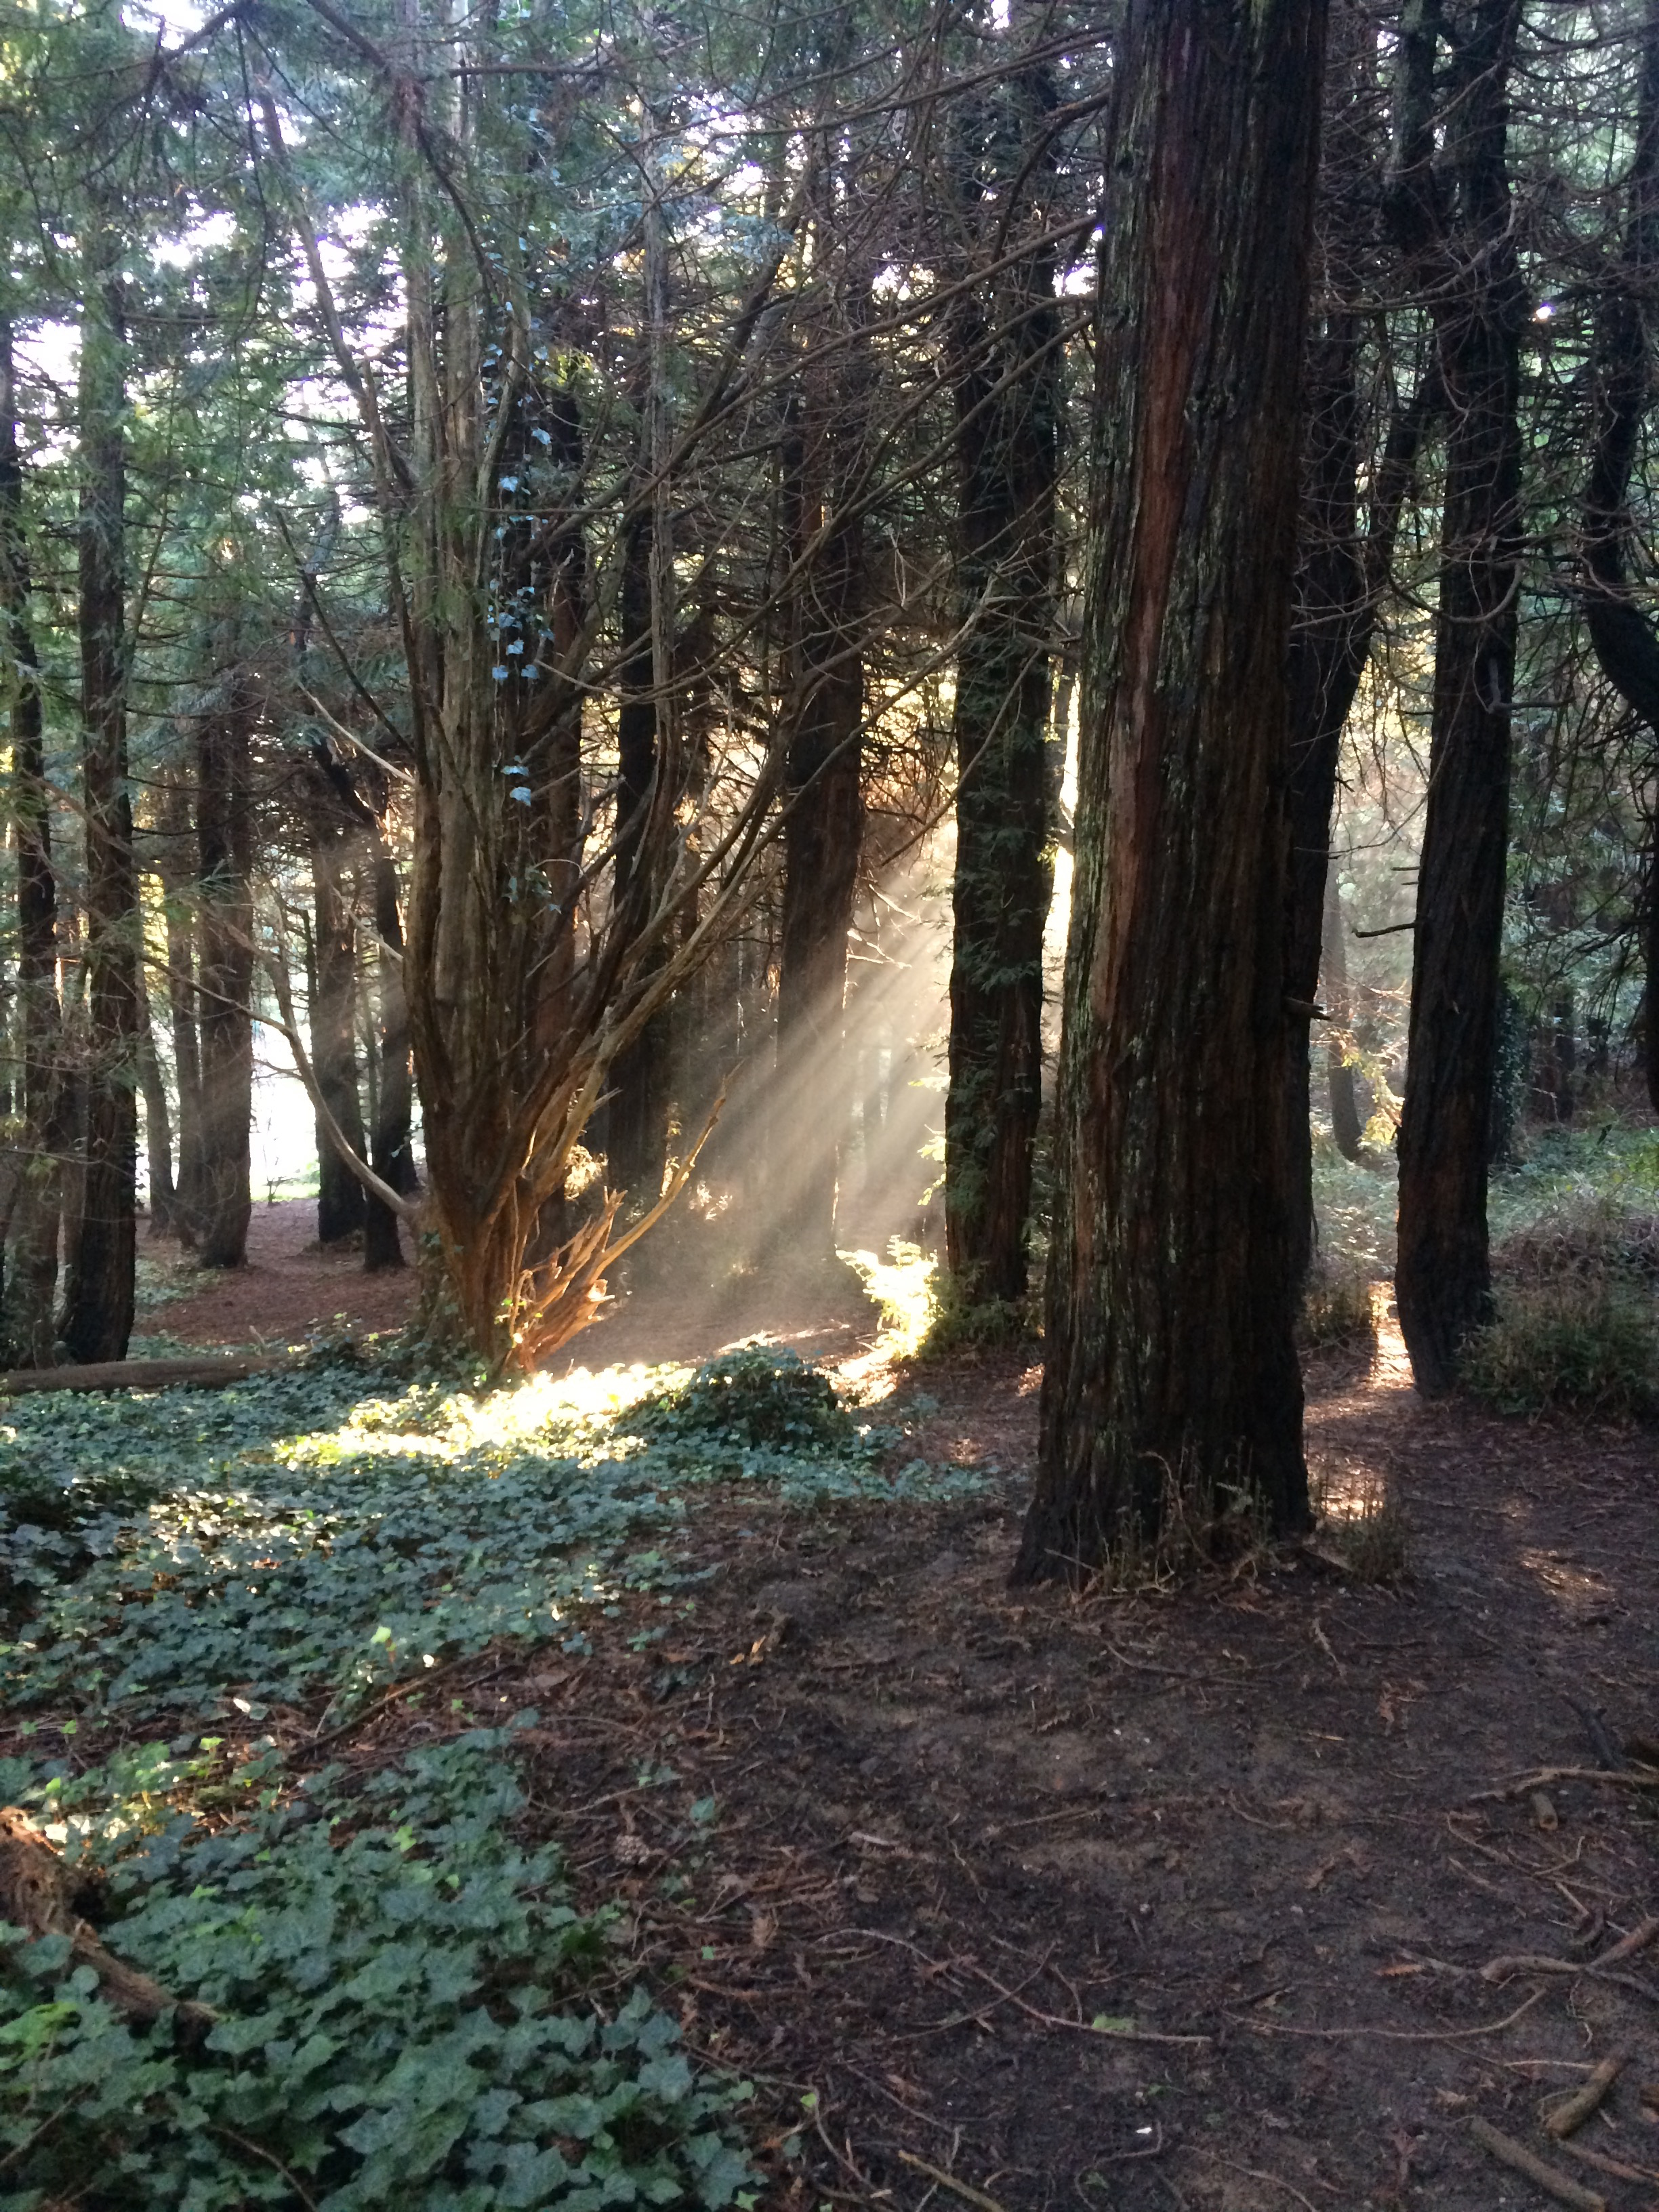 """""""Breakthrough"""" John McLaren Park, San Francisco, California Taken by my daughter on January 14, 2017 at 8:30am Thank you, Alicia, for sharing this beautiful photo from your walk this morning in this magical place. It is the perfect analogy for the awareness insights that so inspire me with my amazing clients."""